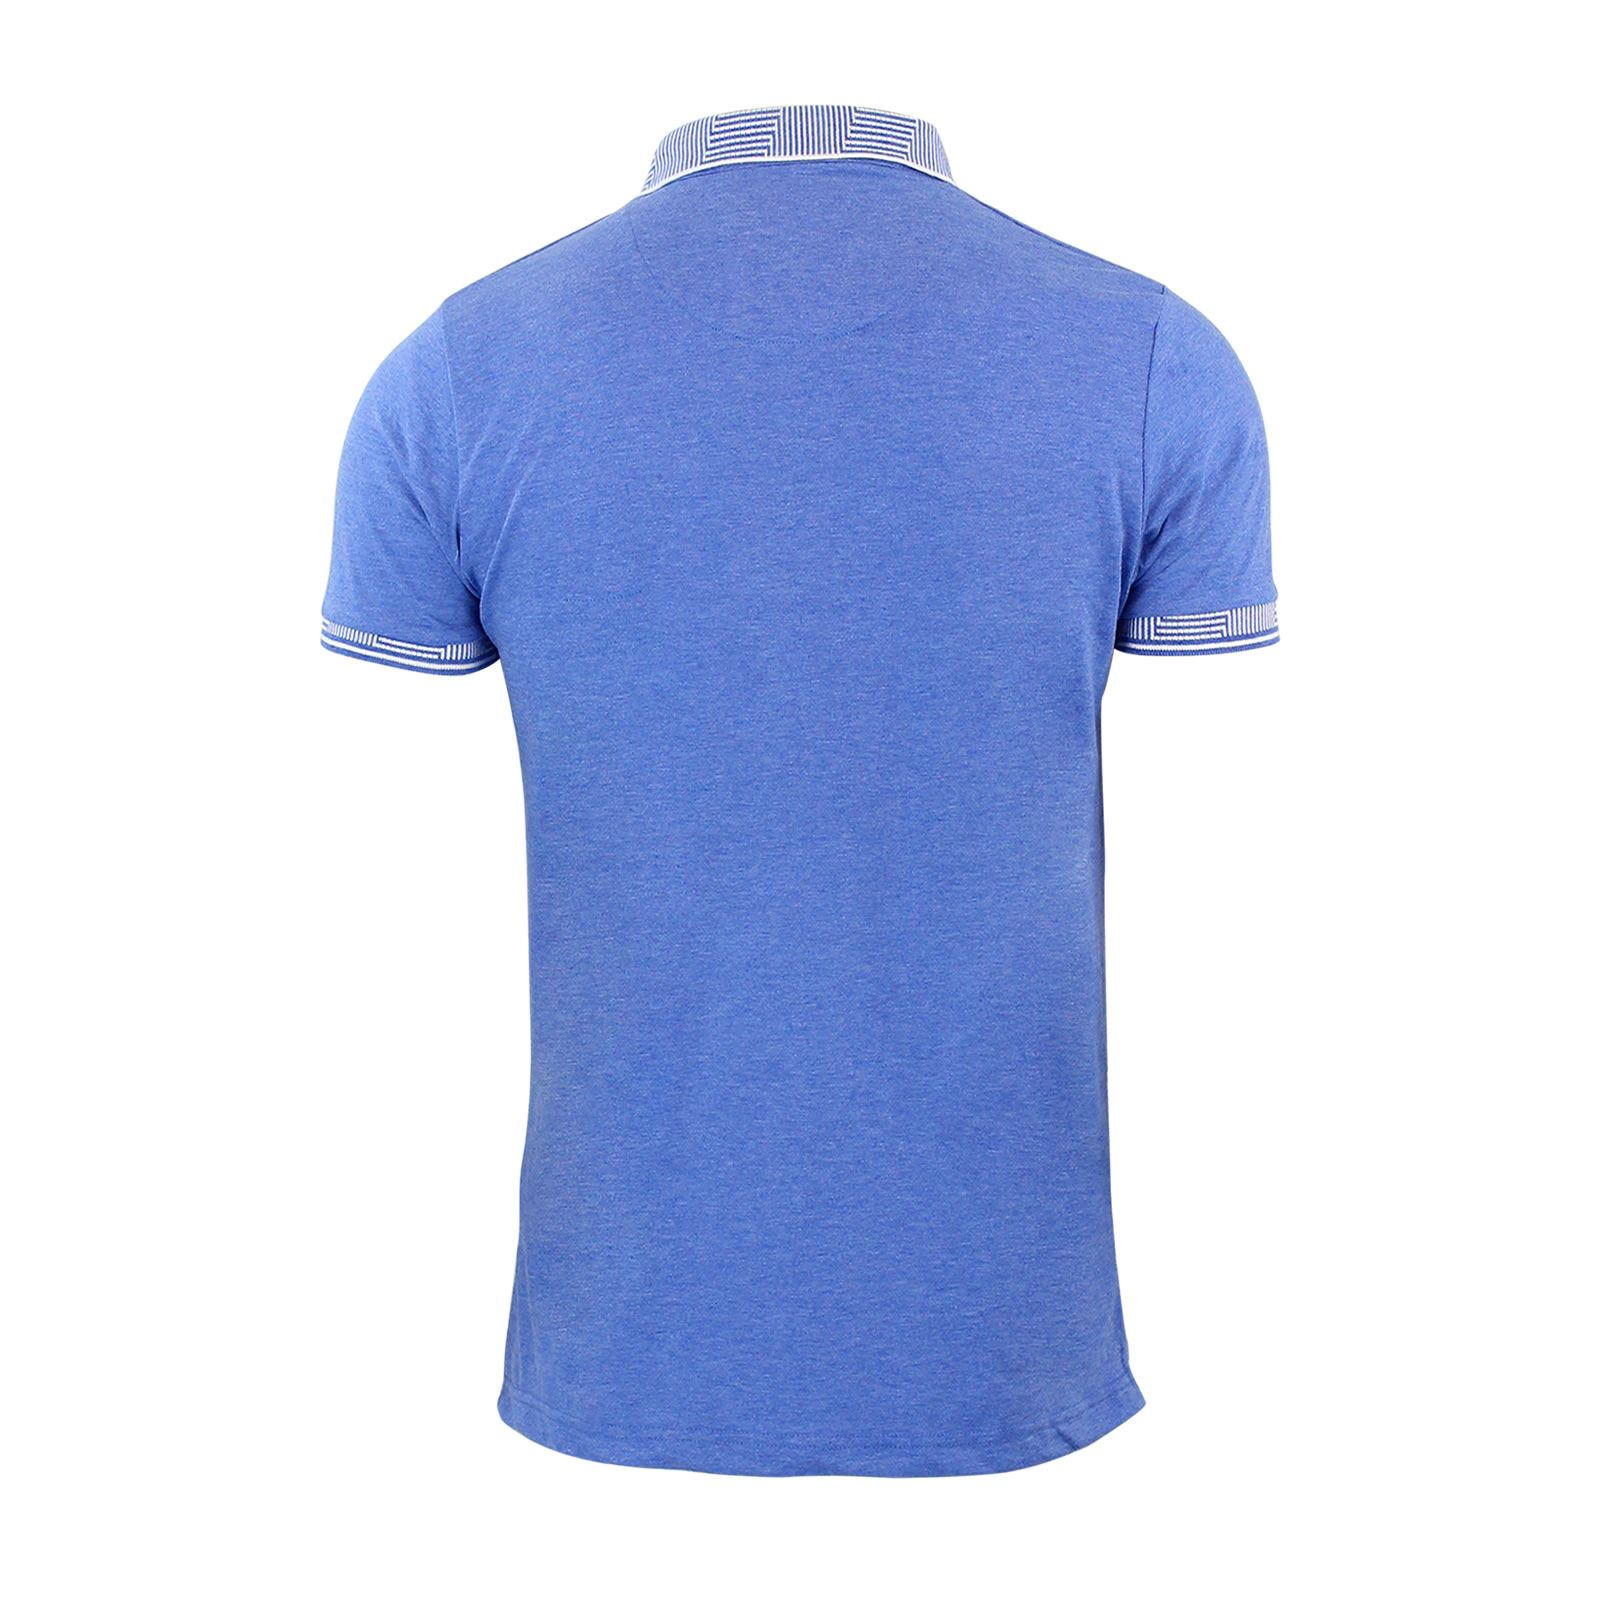 Brave-Soul-Glover-Mens-Polo-T-Shirt-Cotton-Collared-Short-Sleeve-Casual-Top thumbnail 50